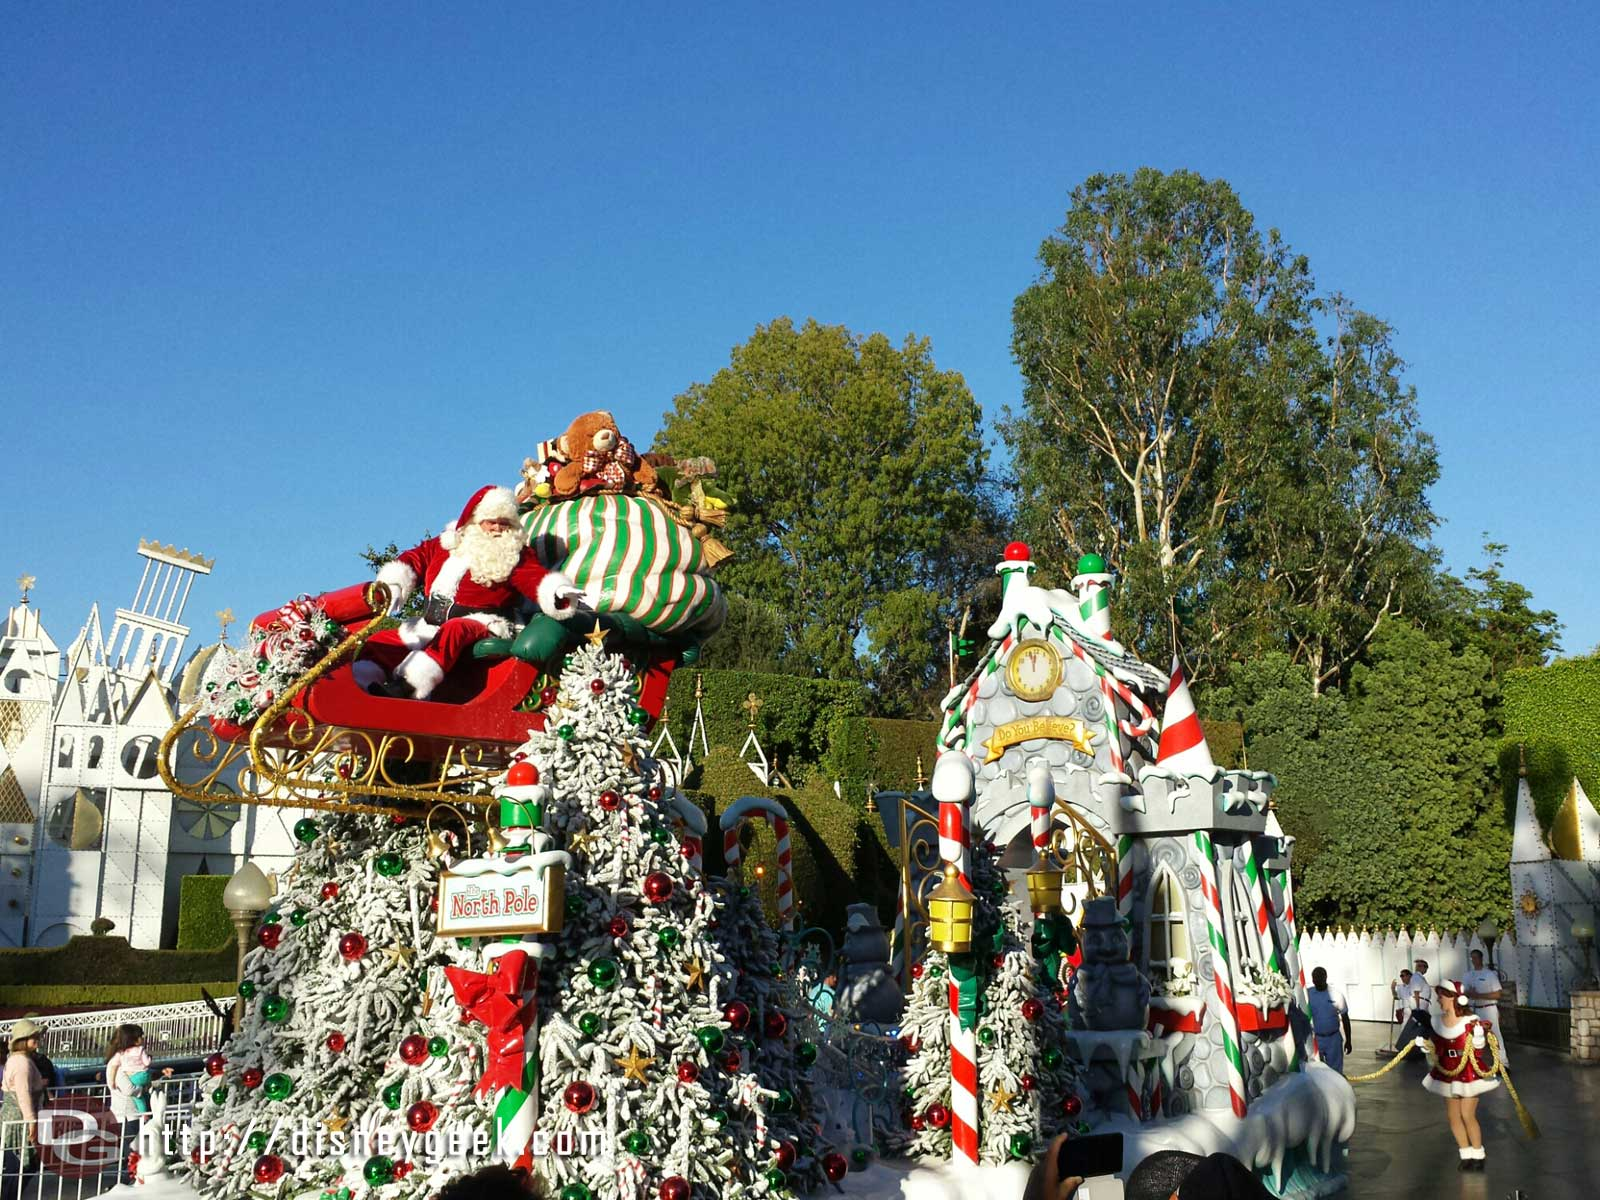 Santa closing out the Christmas Fantasy Parade #Disneyland